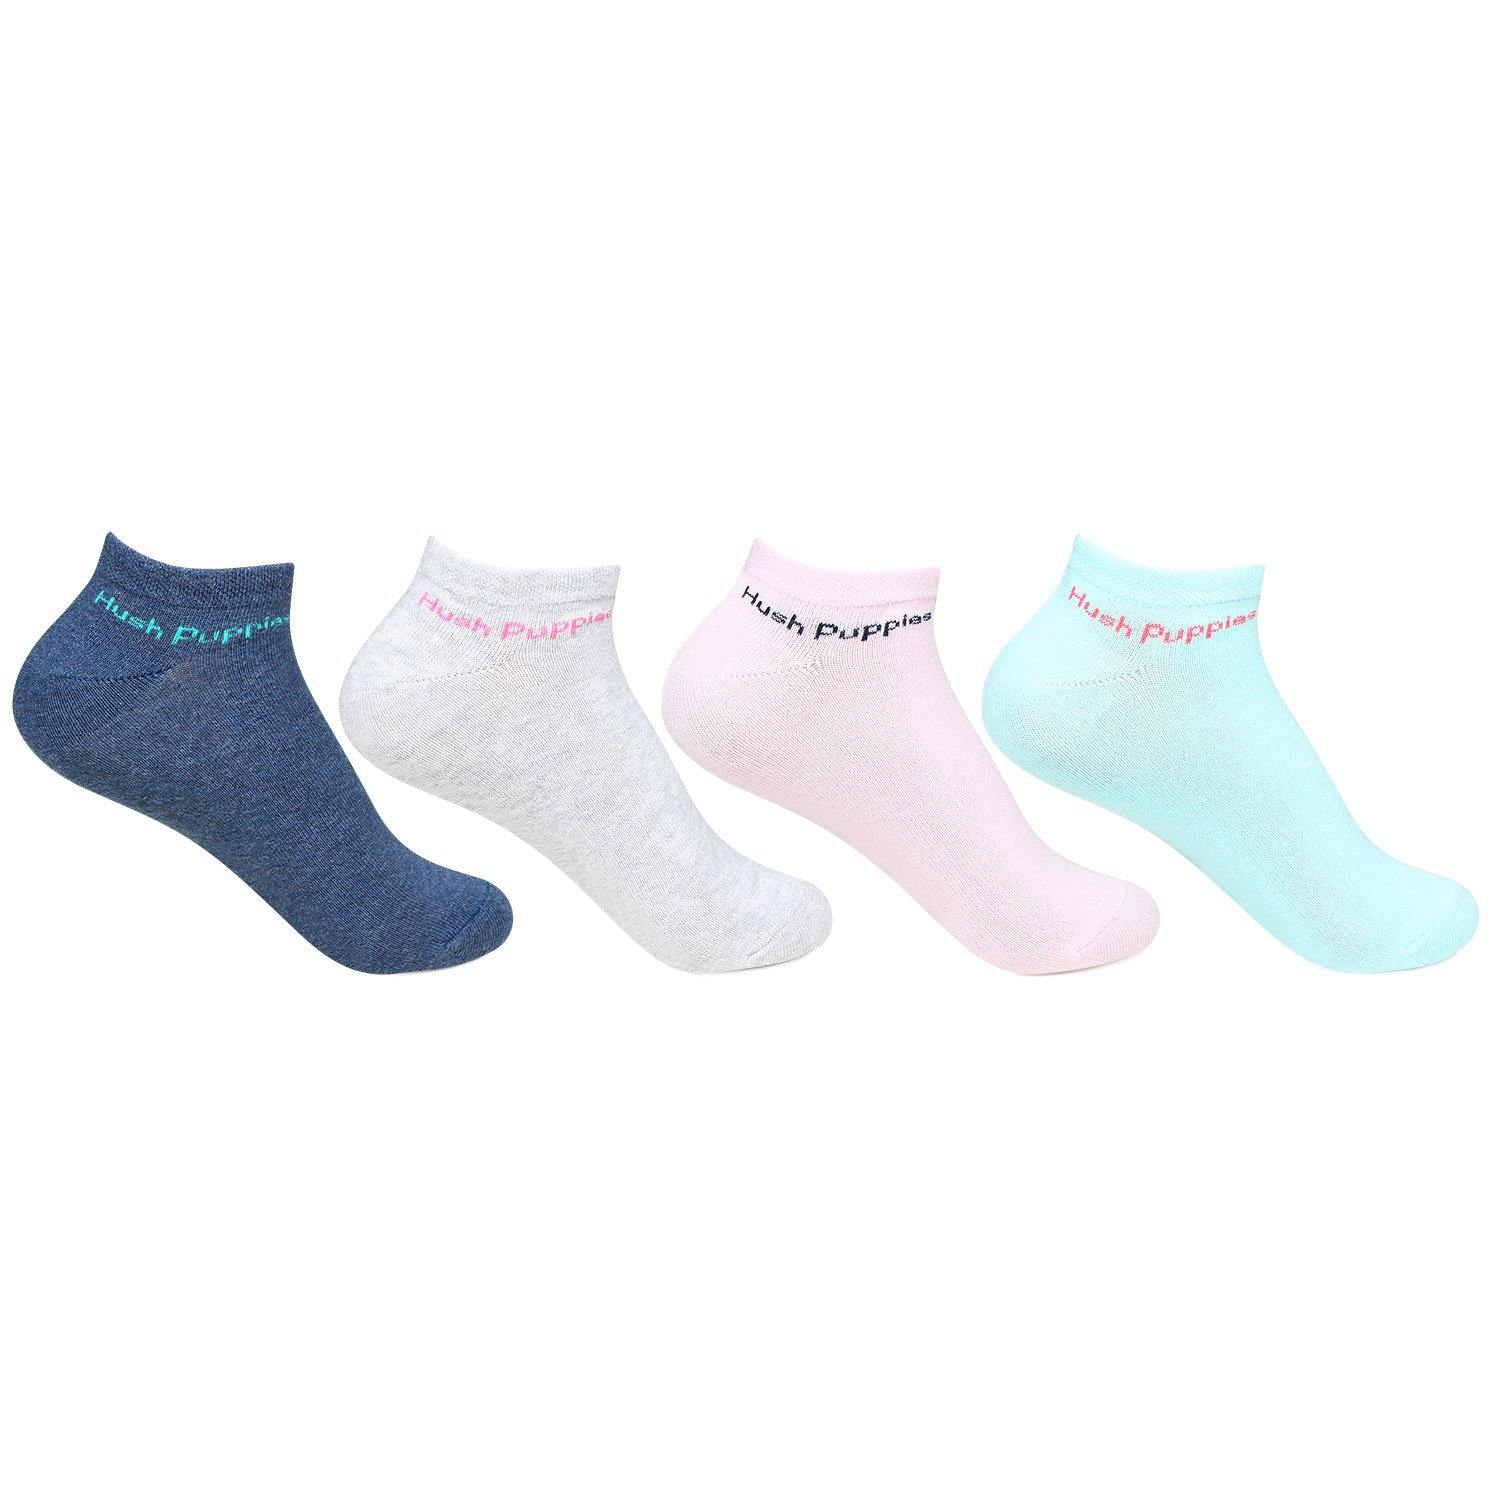 Hush Puppies Women's Cotton Low Ankle Socks - Pack of 4